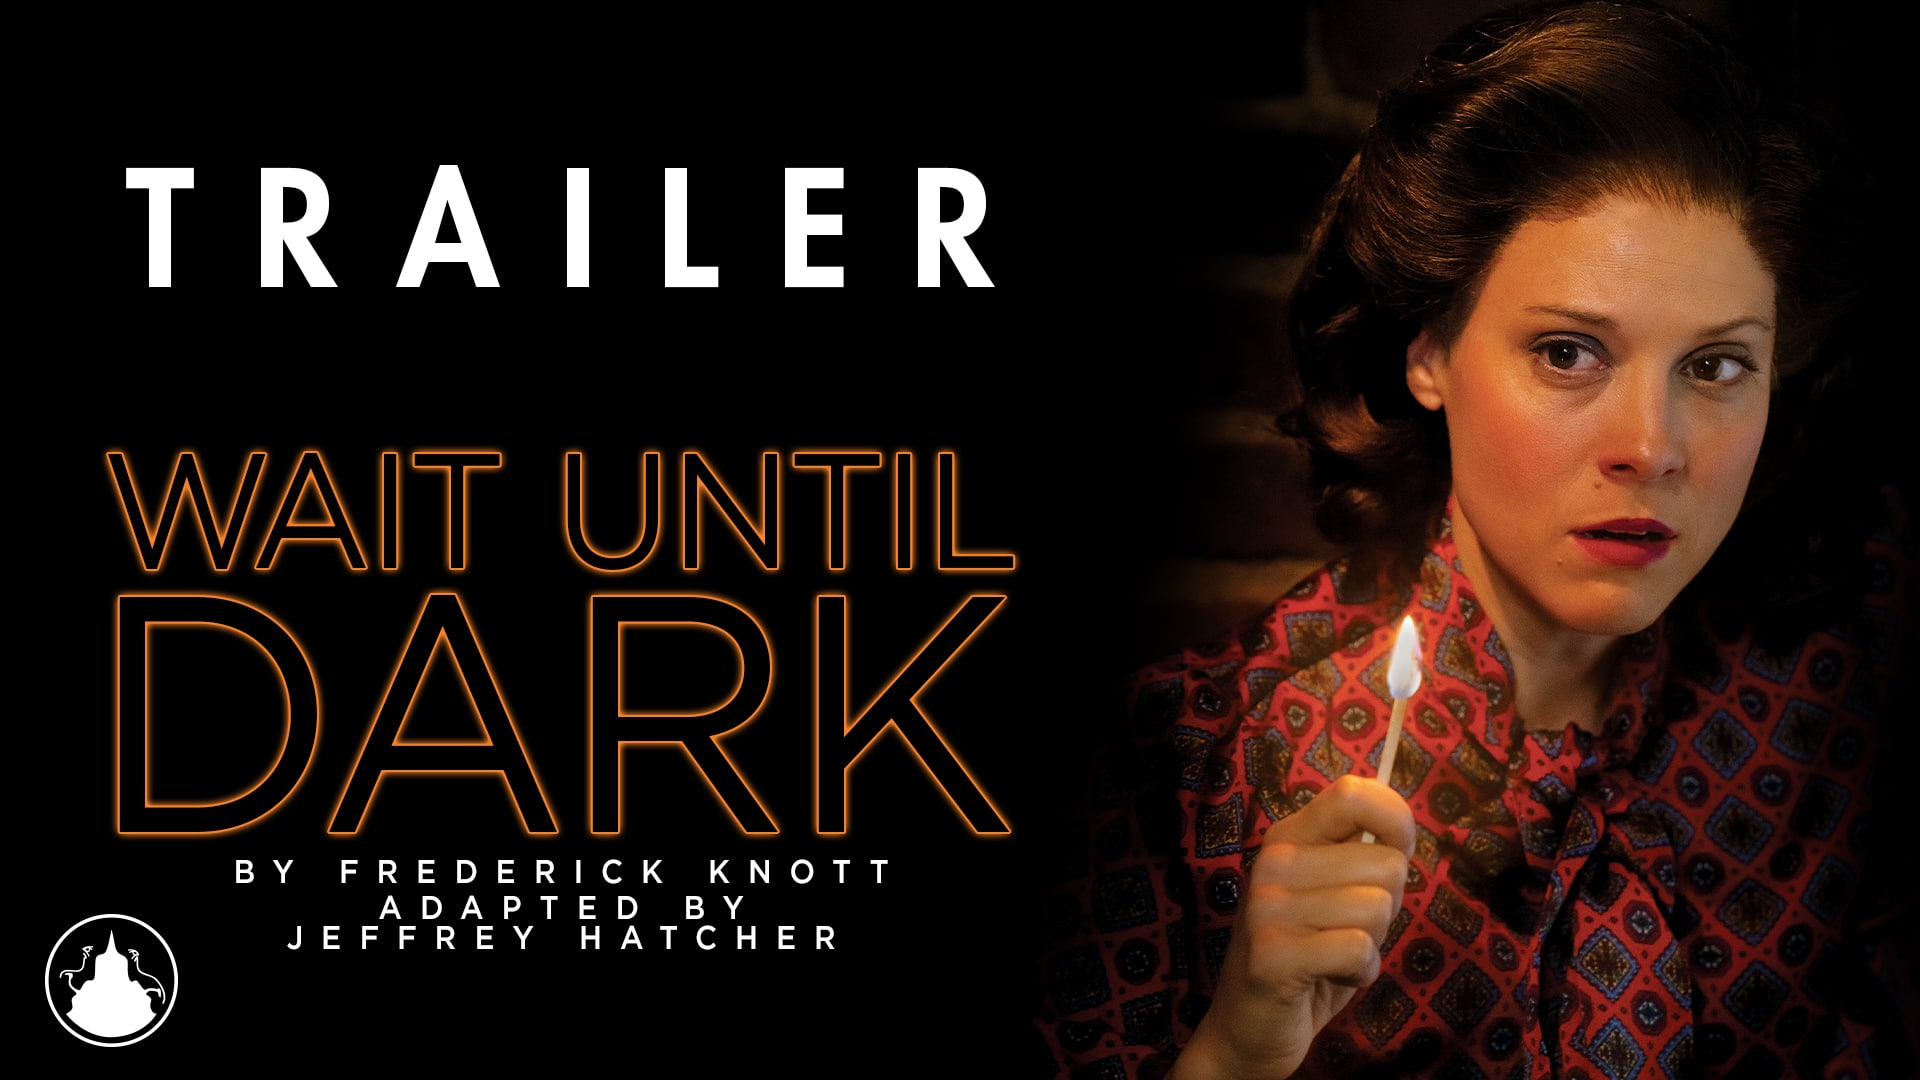 Thumbnail picture for the Wait Until Dark trailer featuring footage from the production.